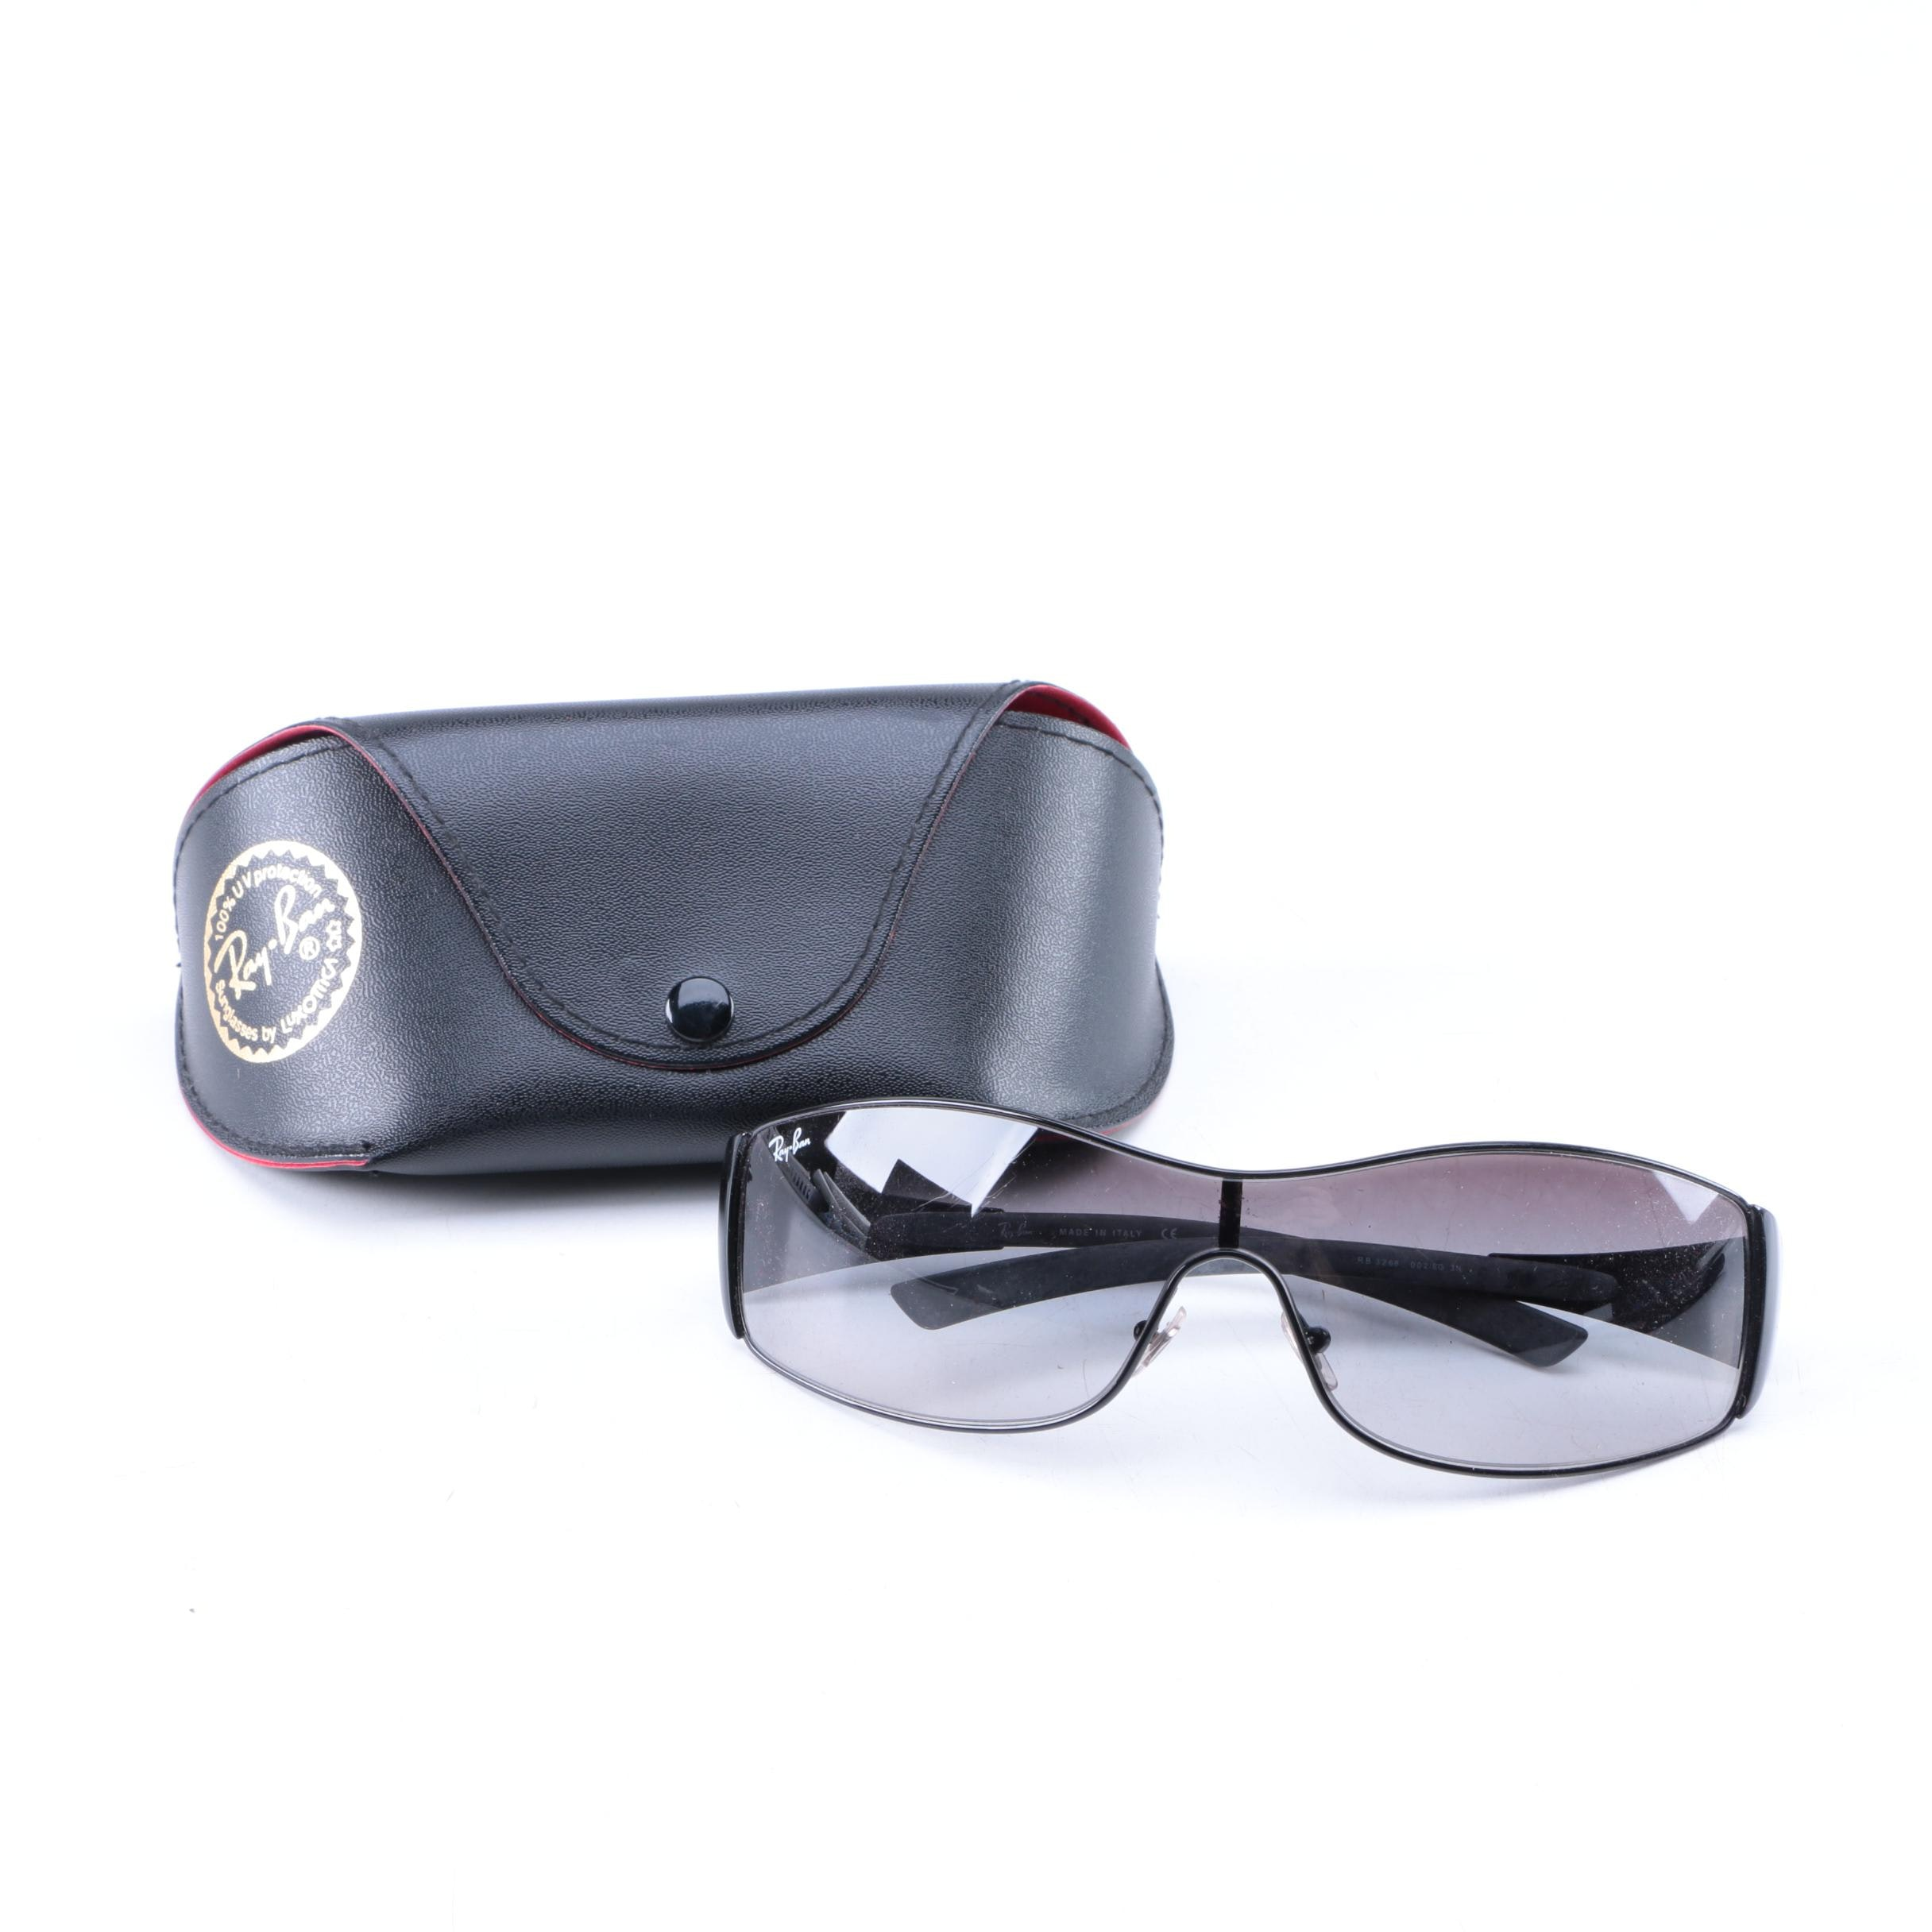 Women's Ray-Ban Sunglasses with Case